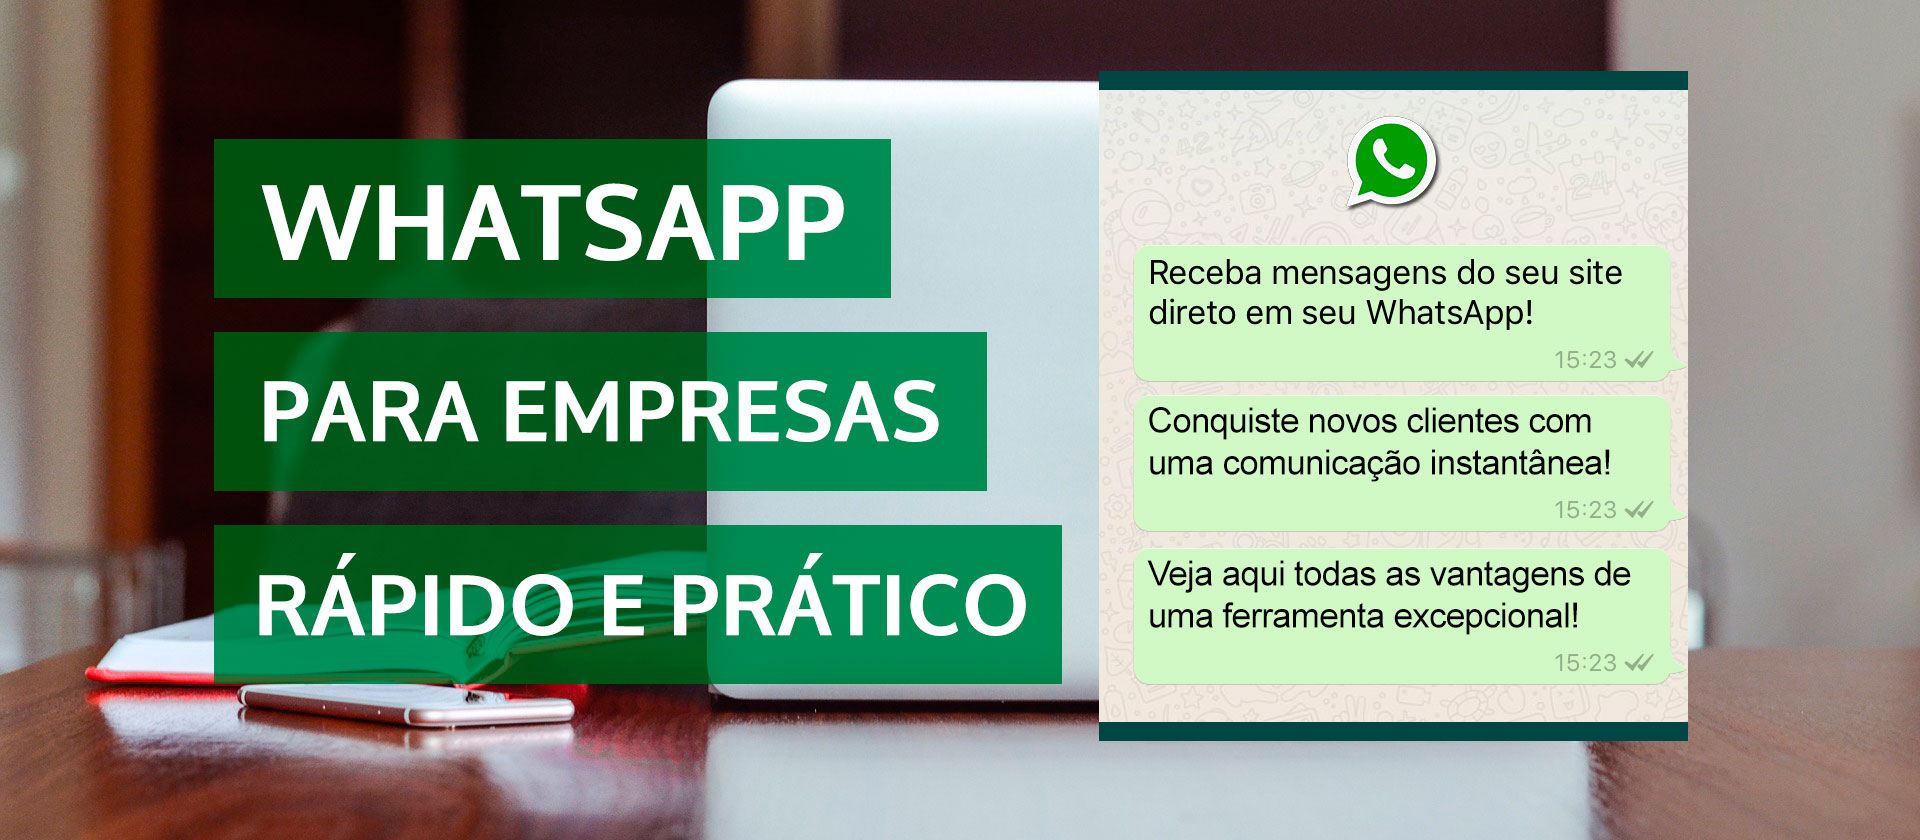 Whatsapp no site